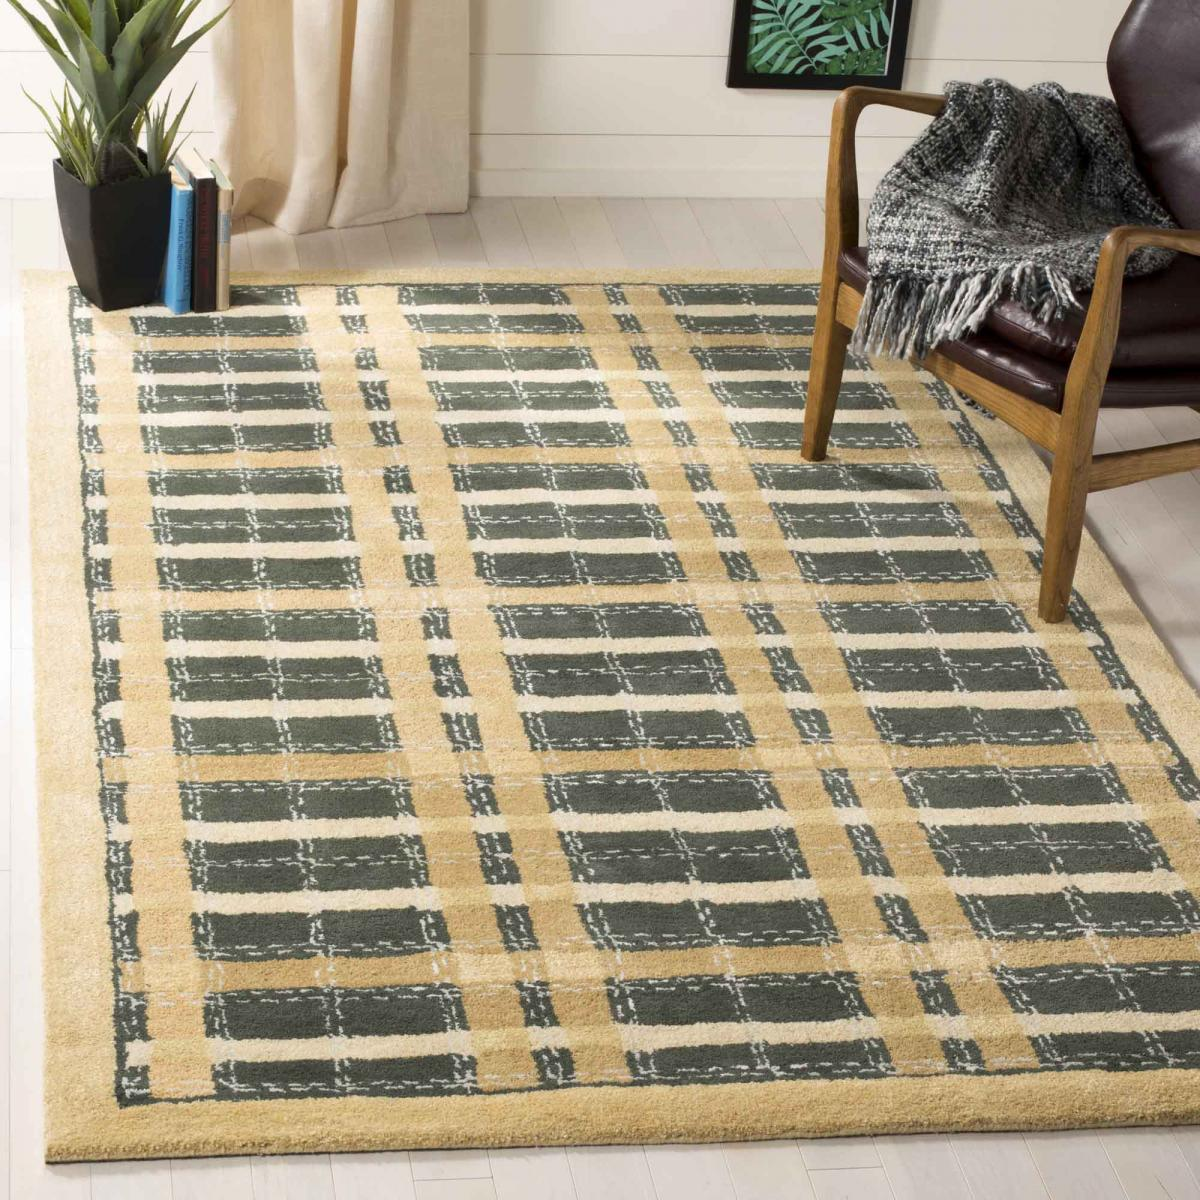 Plaid Rug: Rug MSR3613A-Colorweave Plaid